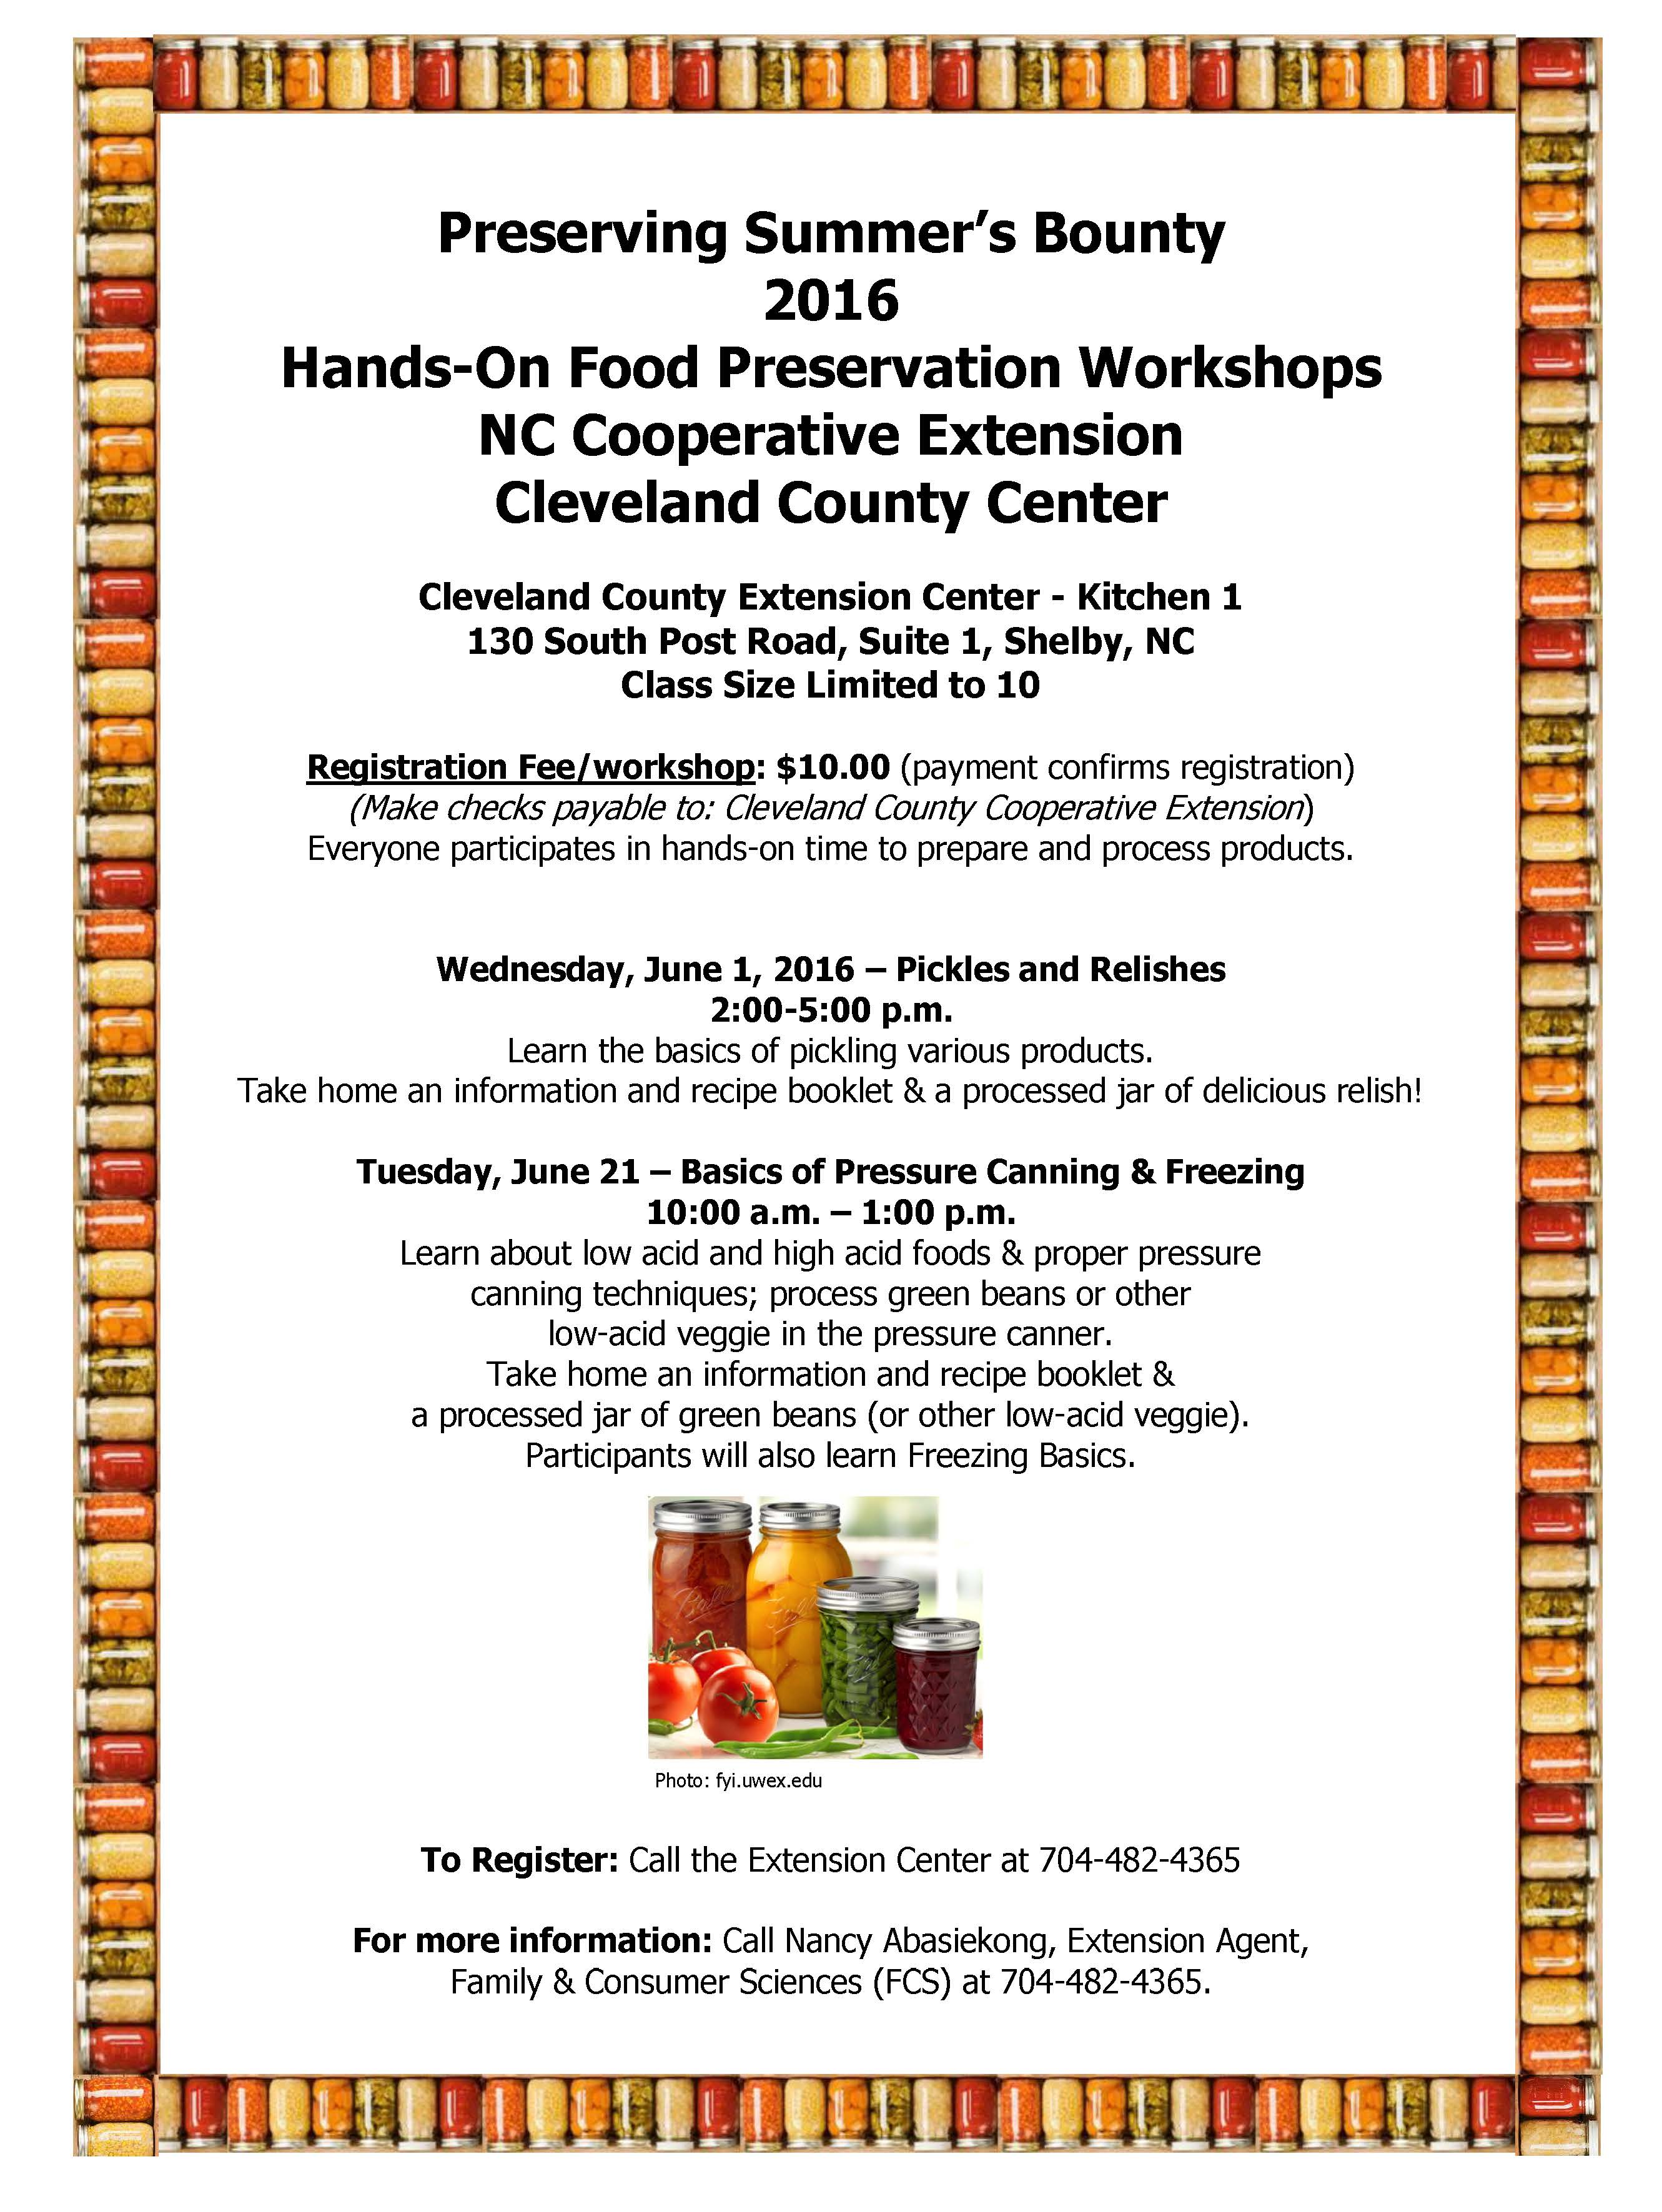 Food Preservation Classes Offered | North Carolina Cooperative Extension